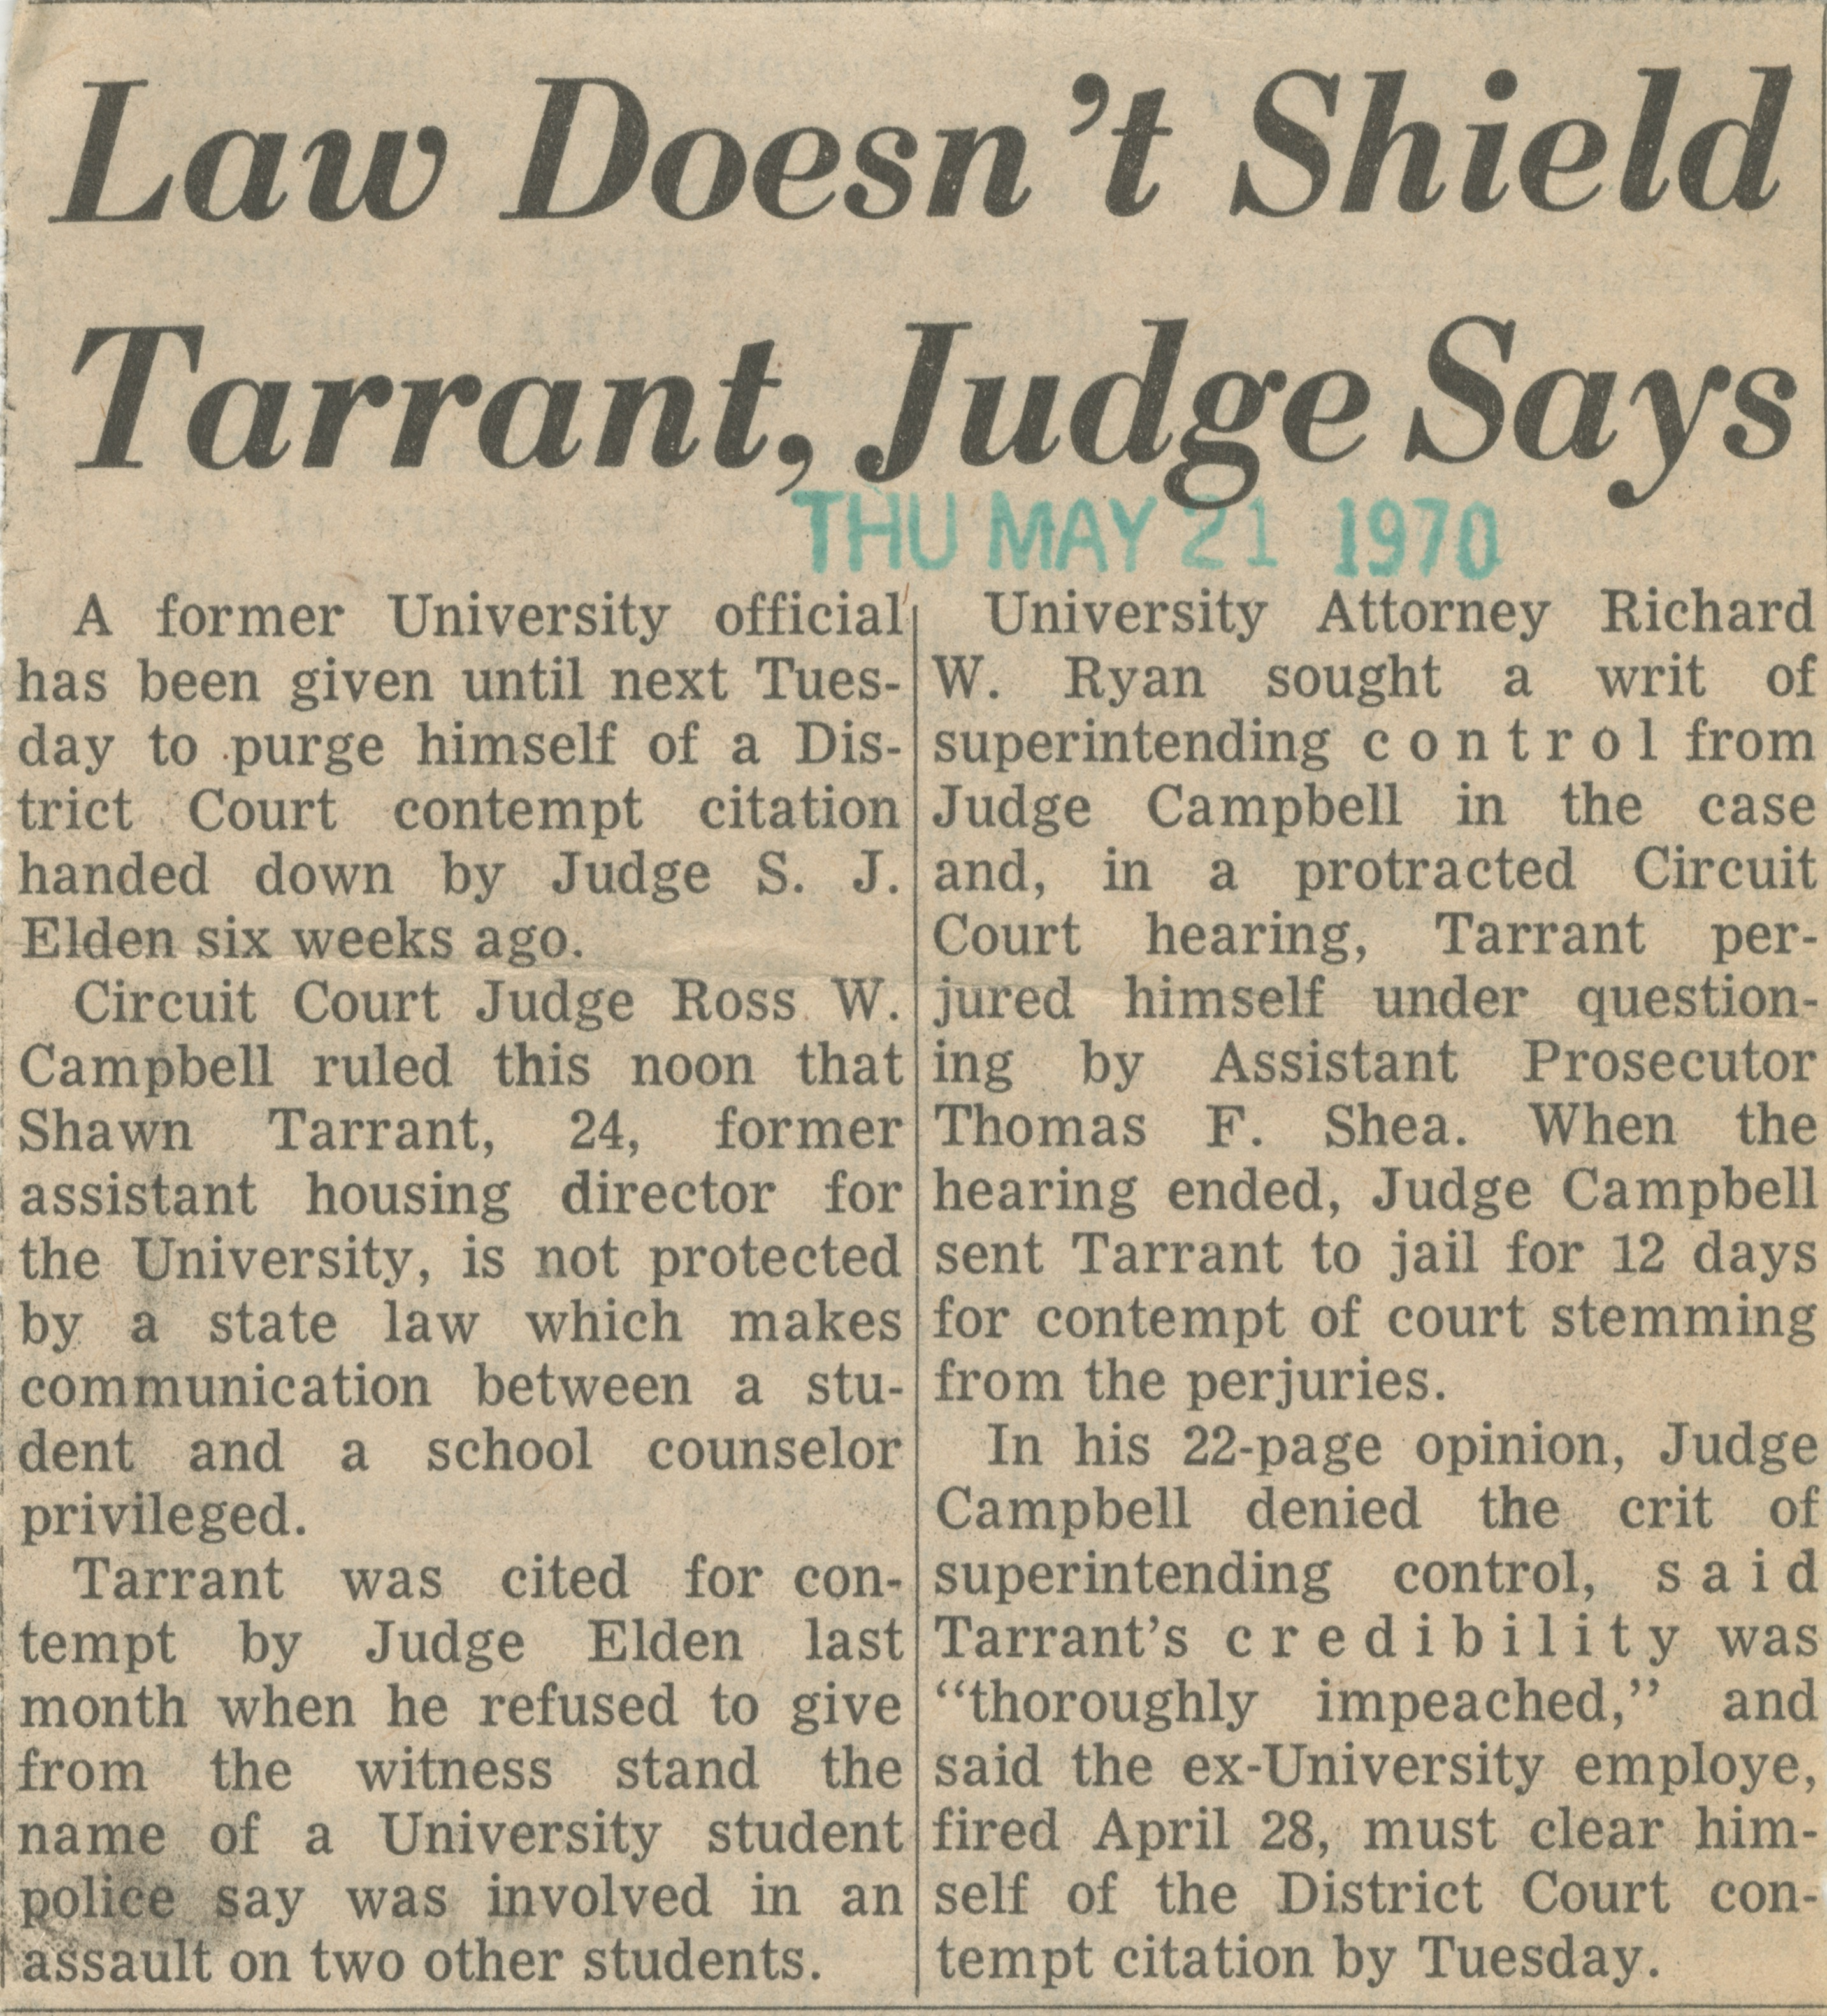 Law Doesn't Shield Tarrant, Judge Says image